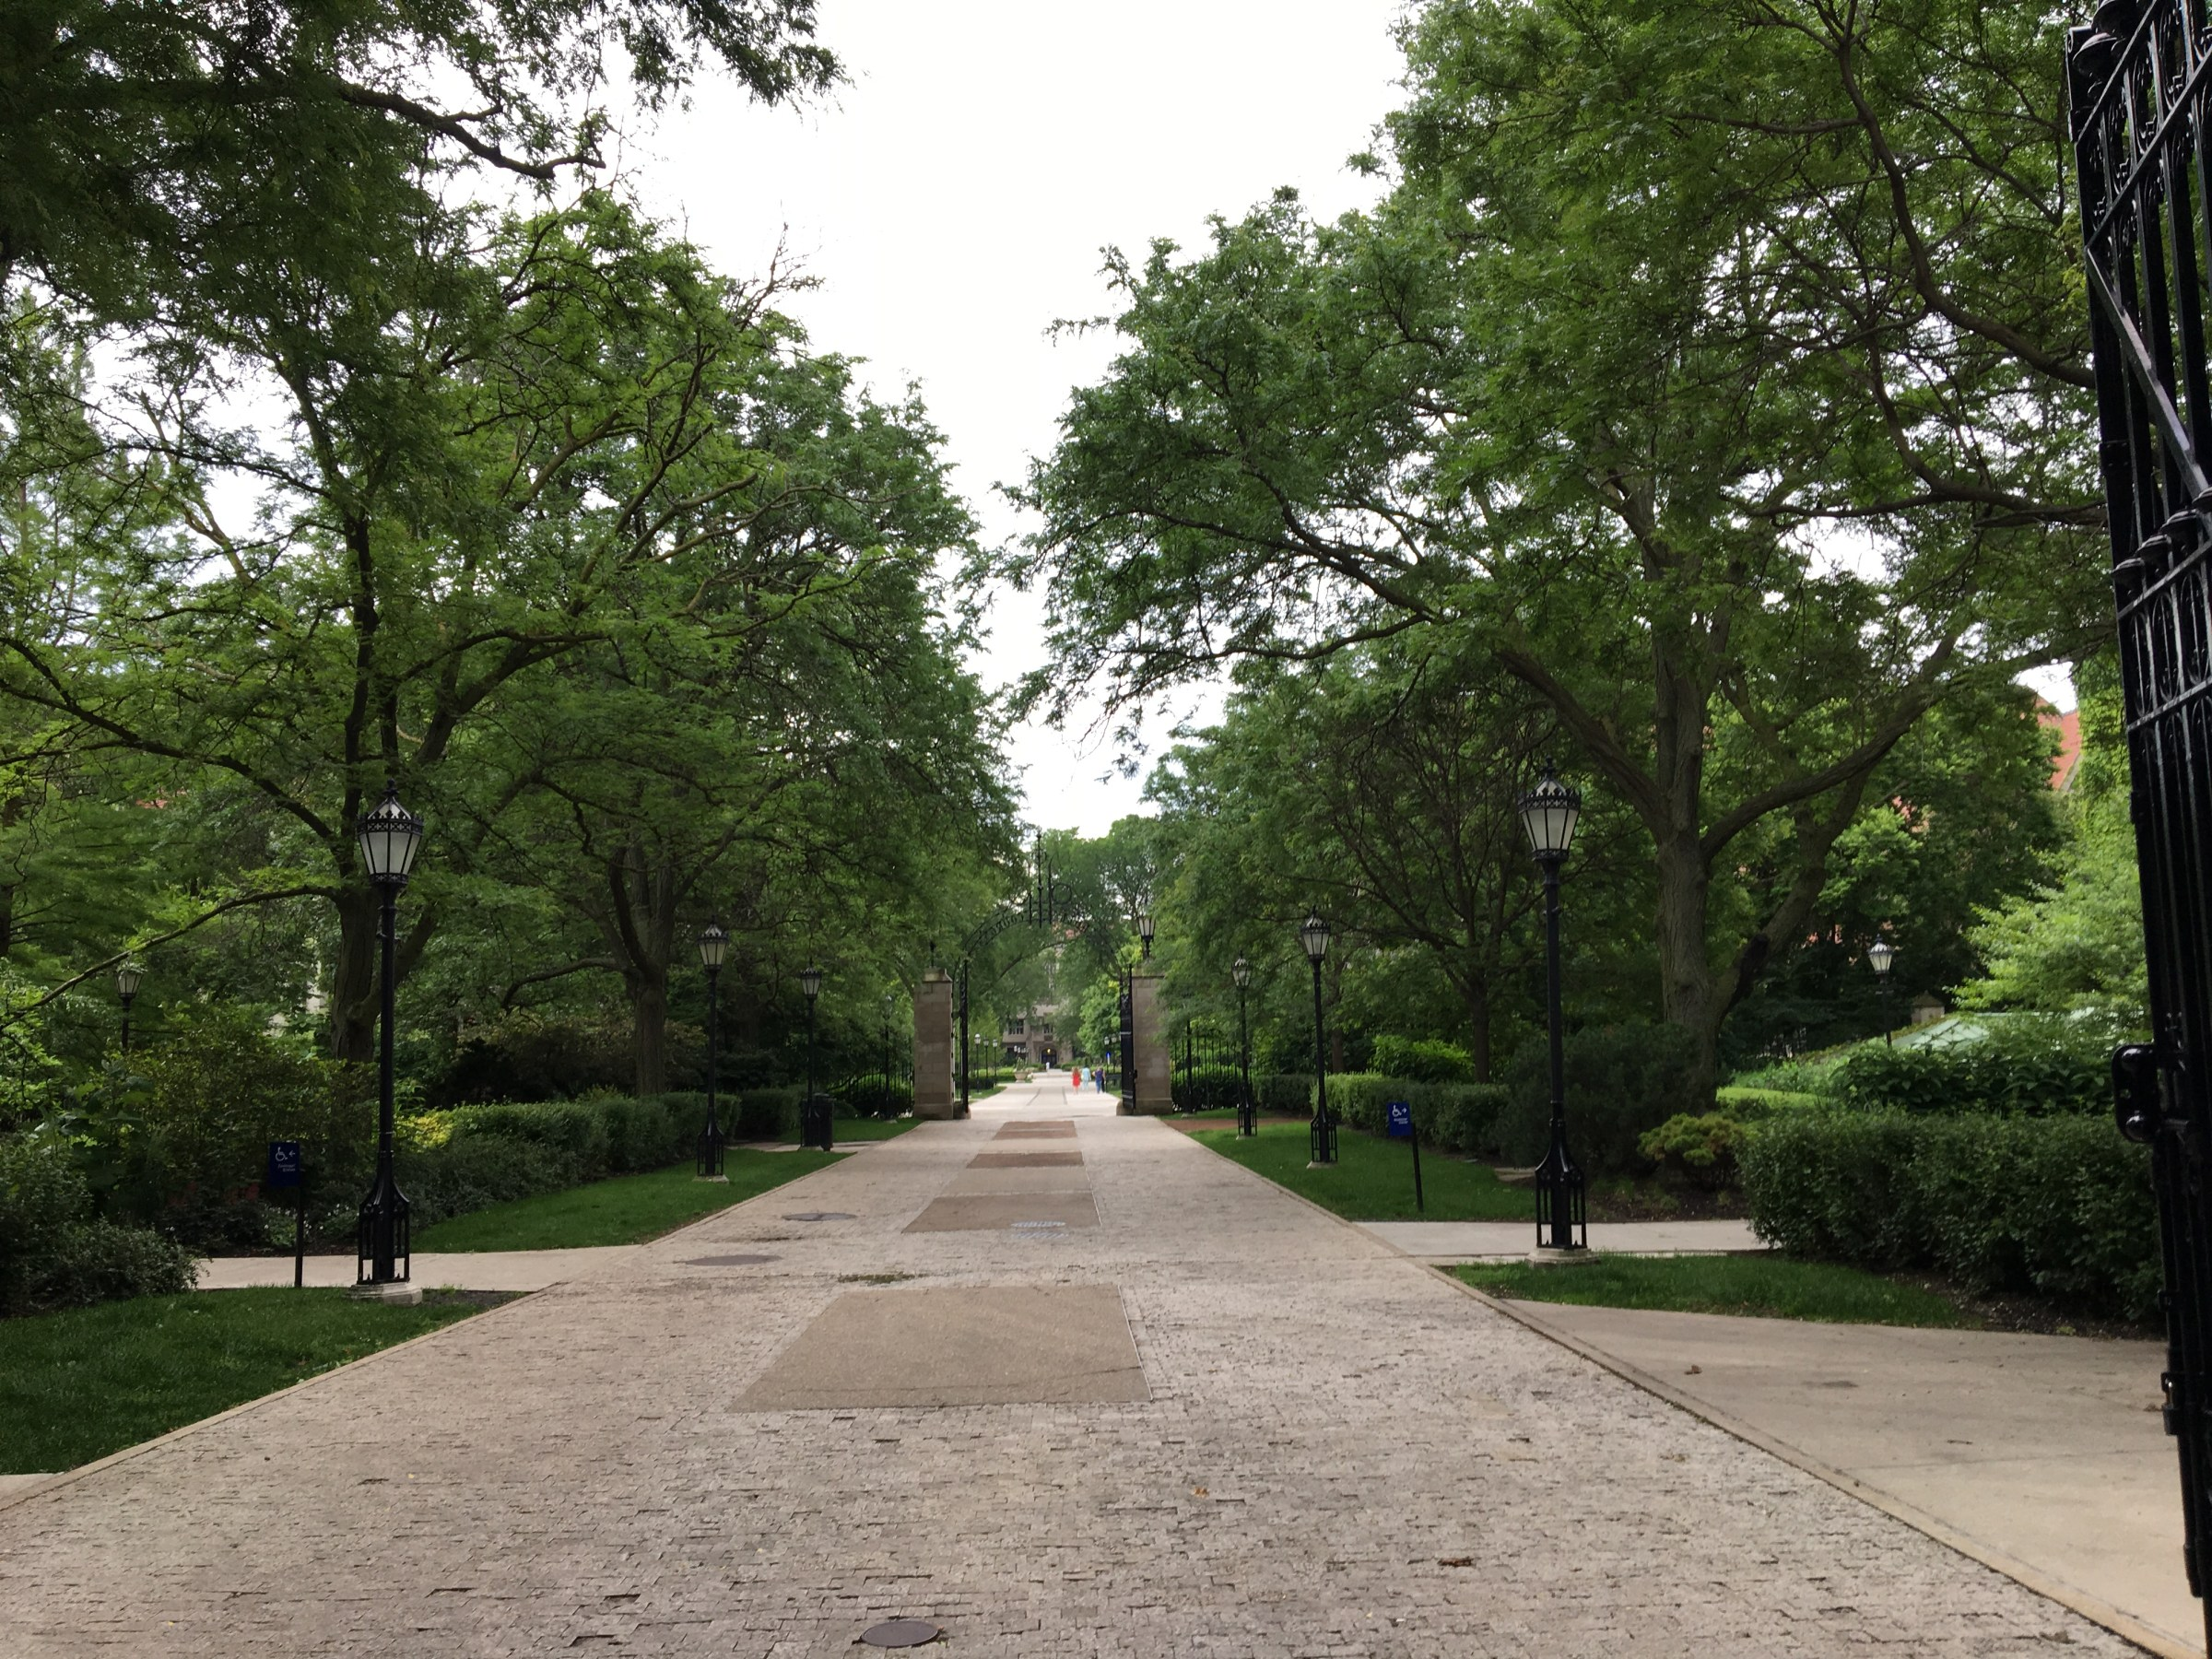 Paved walkway surrounded by trees